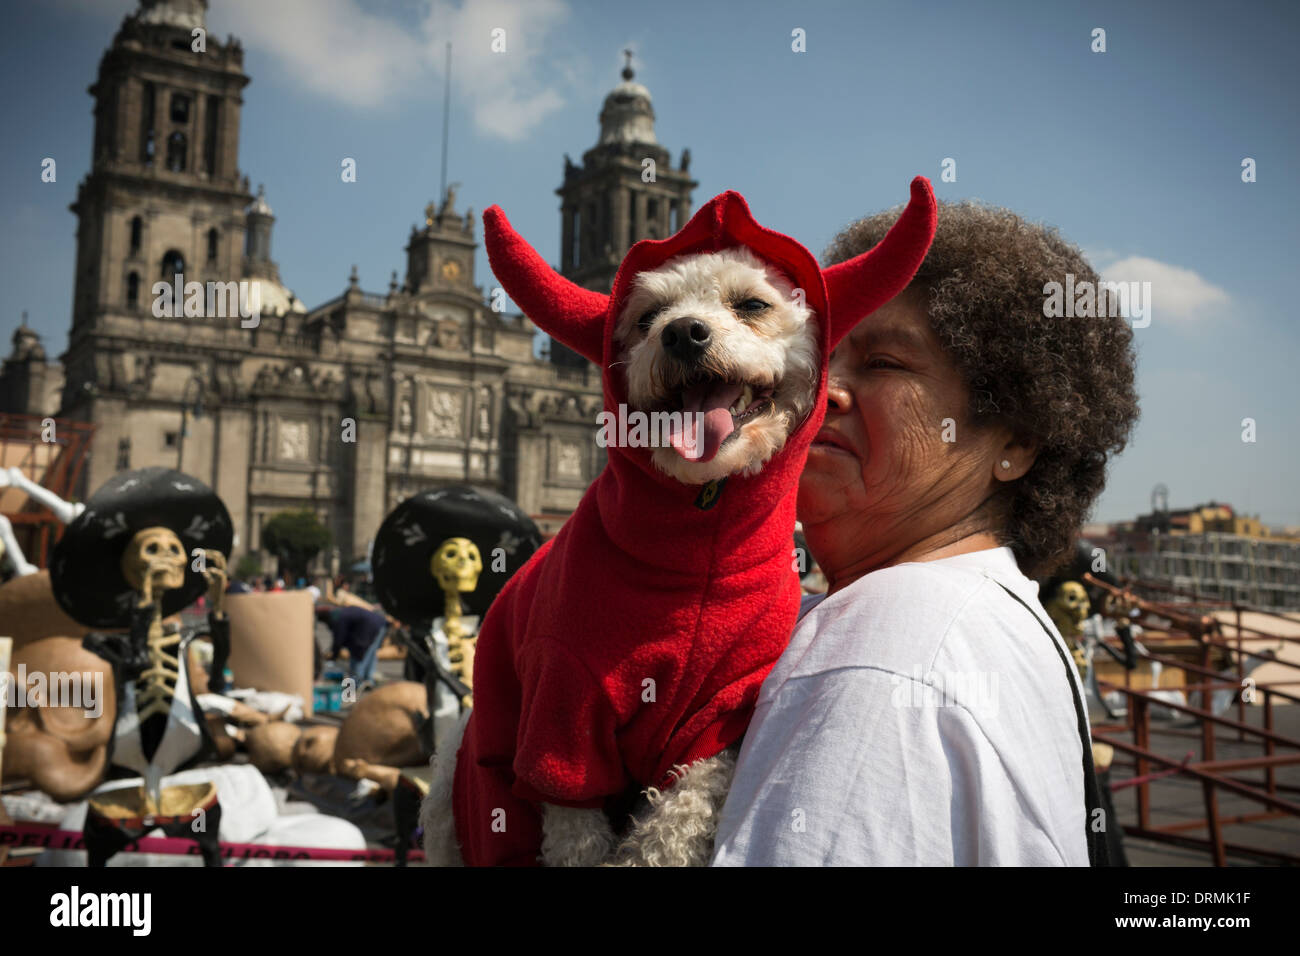 A woman walks with her dog in a devil costume for the celebration of Day of the Dead - Stock Image